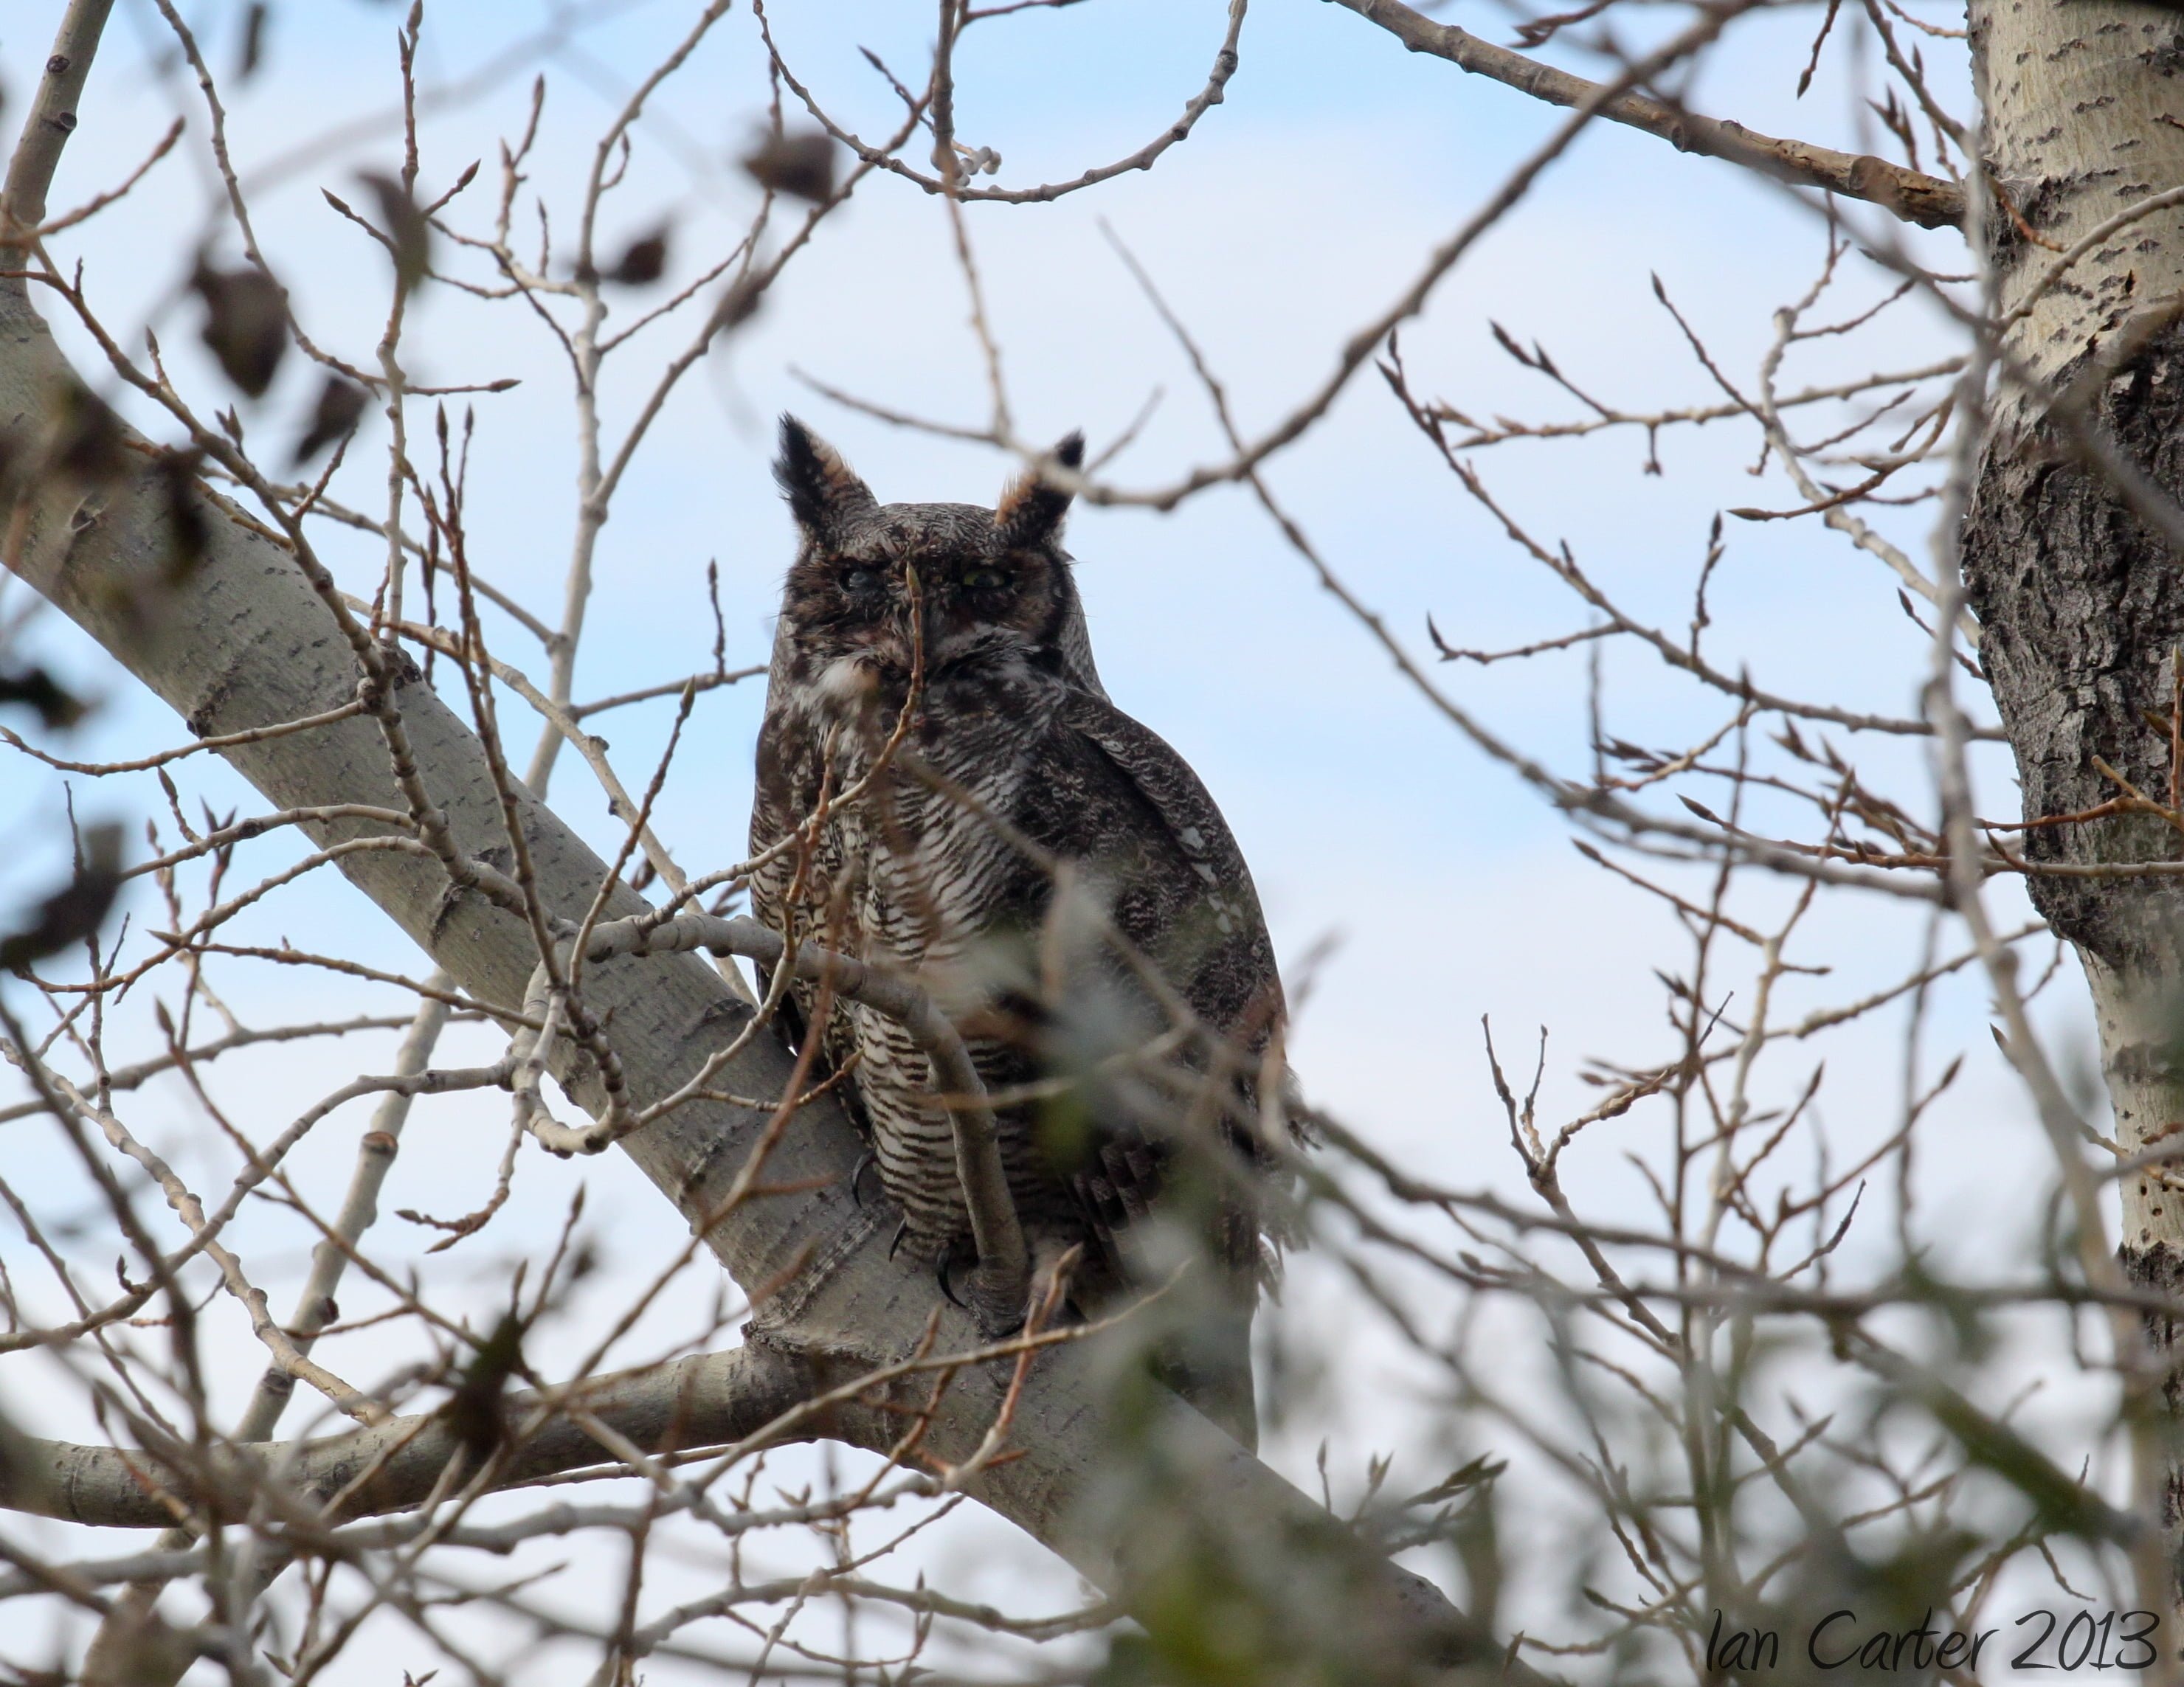 Great Horned Owl - Photo by Ian Carter